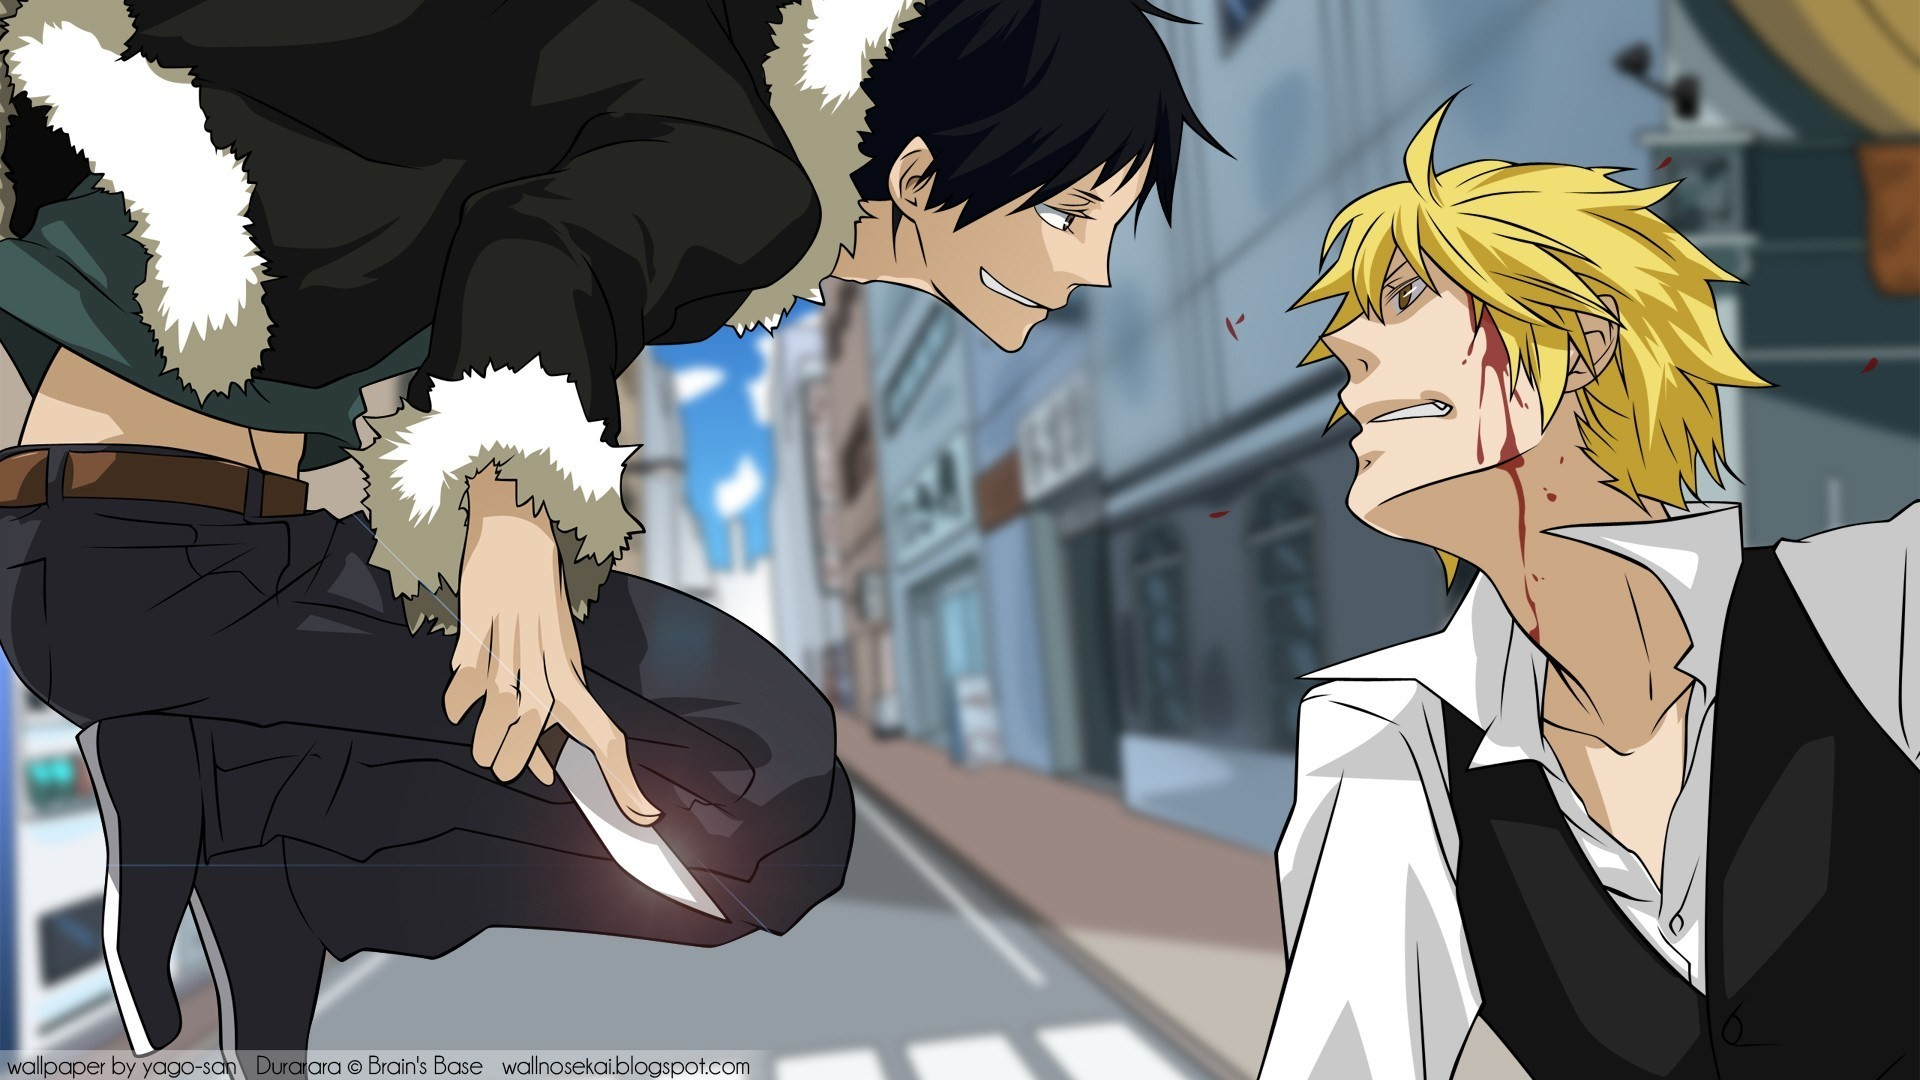 1920x1080 Anime Wallpapers Durarara!! HD 4K Download For Mobile iPhone & PC